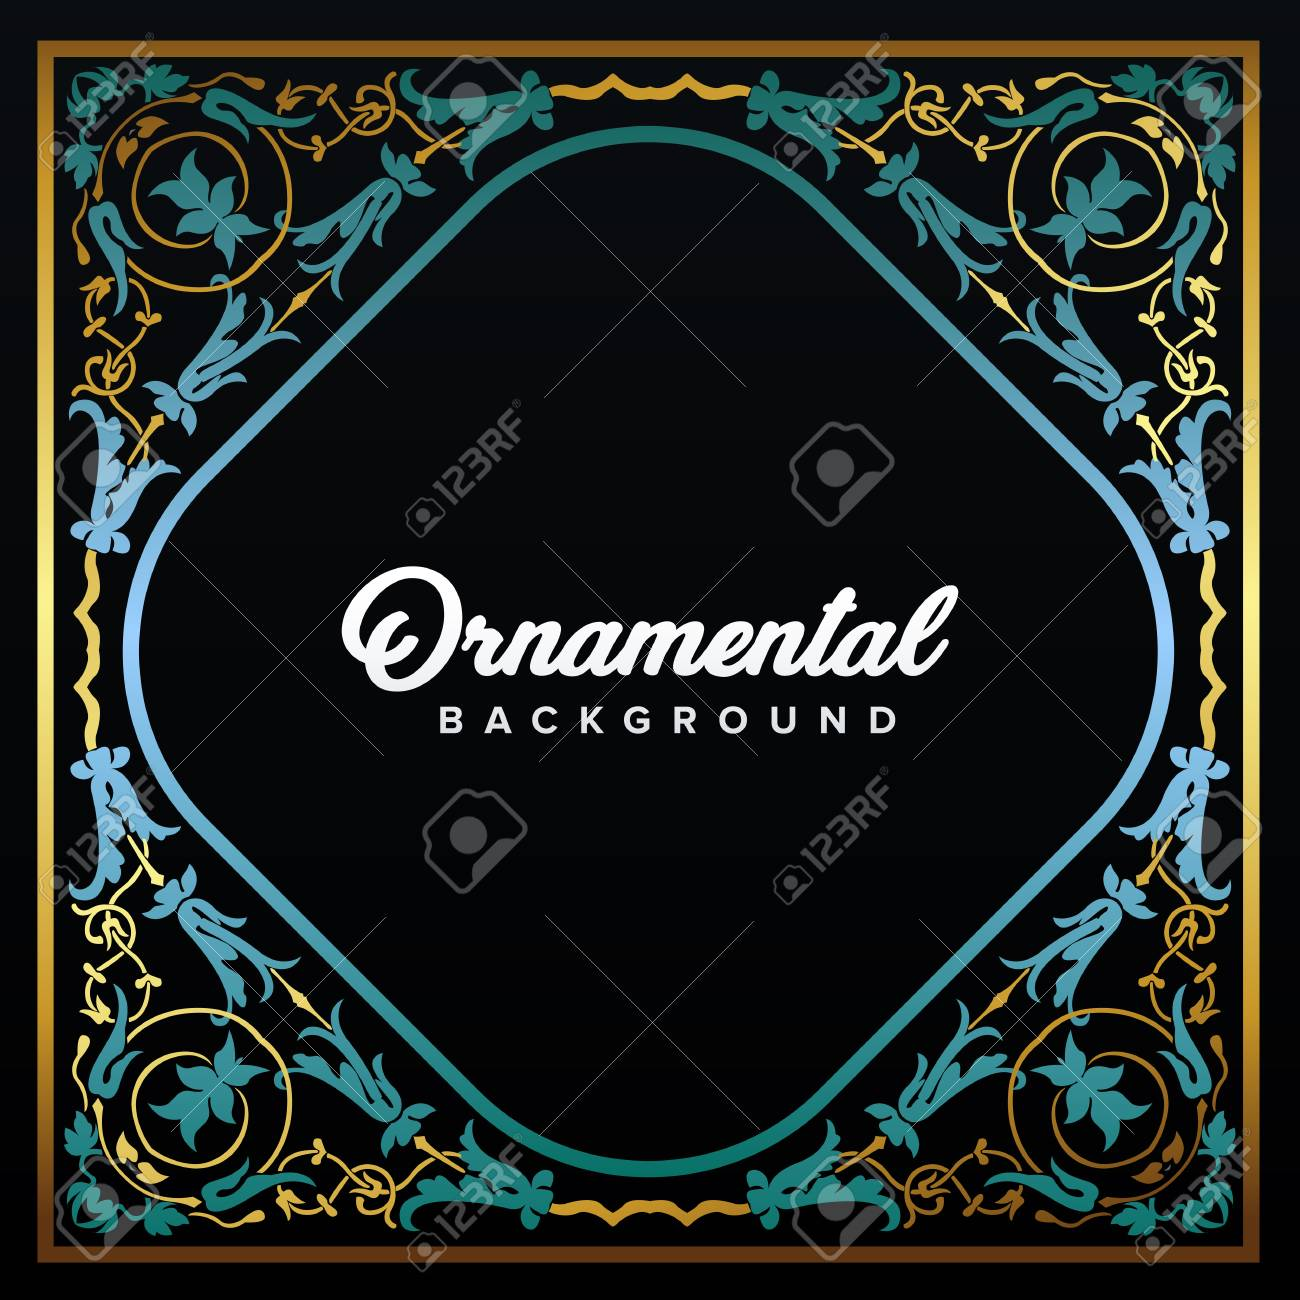 Arabic Frame. Islamic design framed by golden patterns. Mosque decoration element. Elegance Background with Text input area in a center. Vector illustration. - 104925338